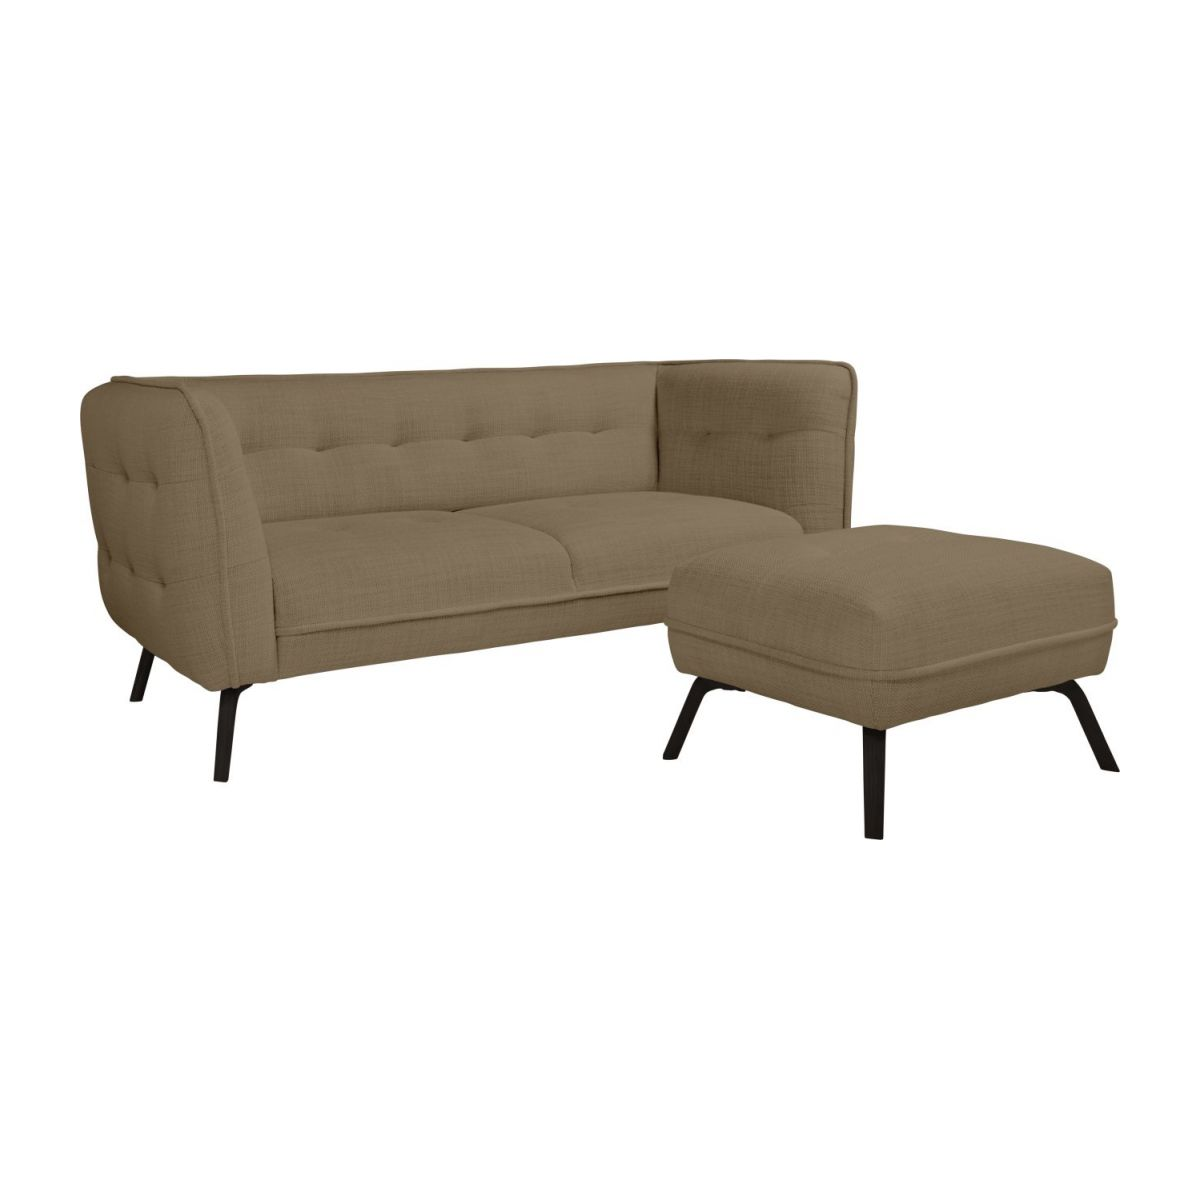 2 seater sofa in Fasoli fabric, jatoba brown and dark legs n°10